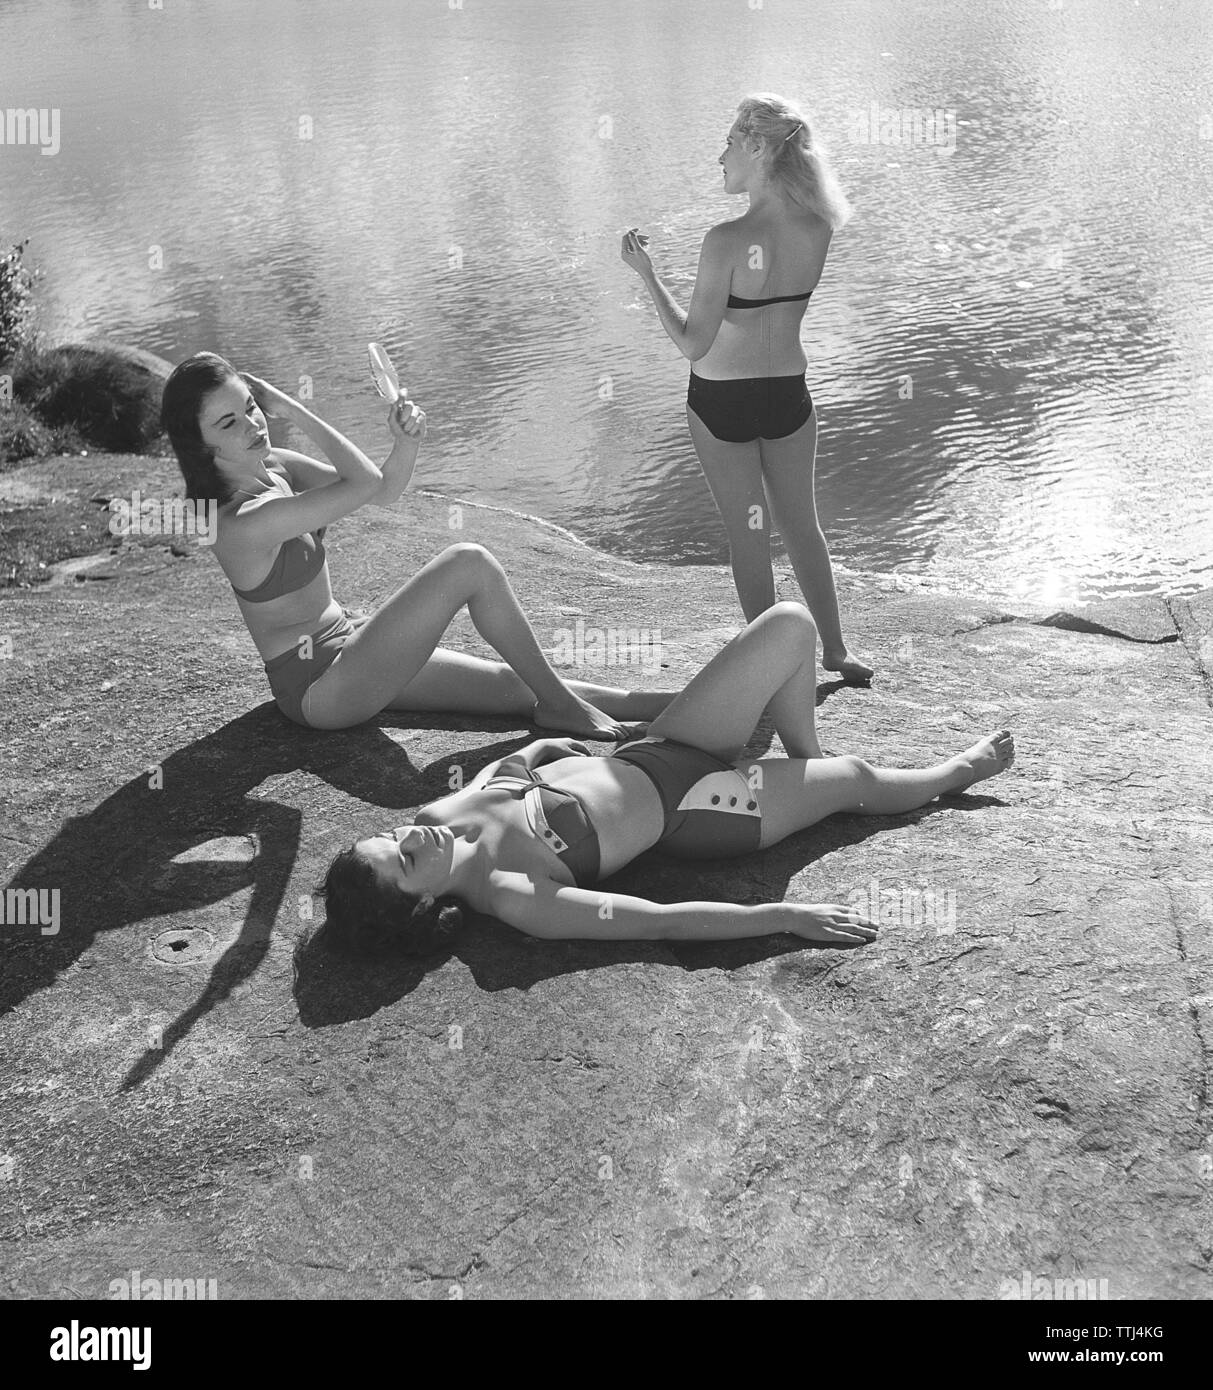 1950s summer. Three young women by the sea are getting a nice suntan. Sweden. Sweden 1955 Kristoffersson Ref BT2-2 - Stock Image